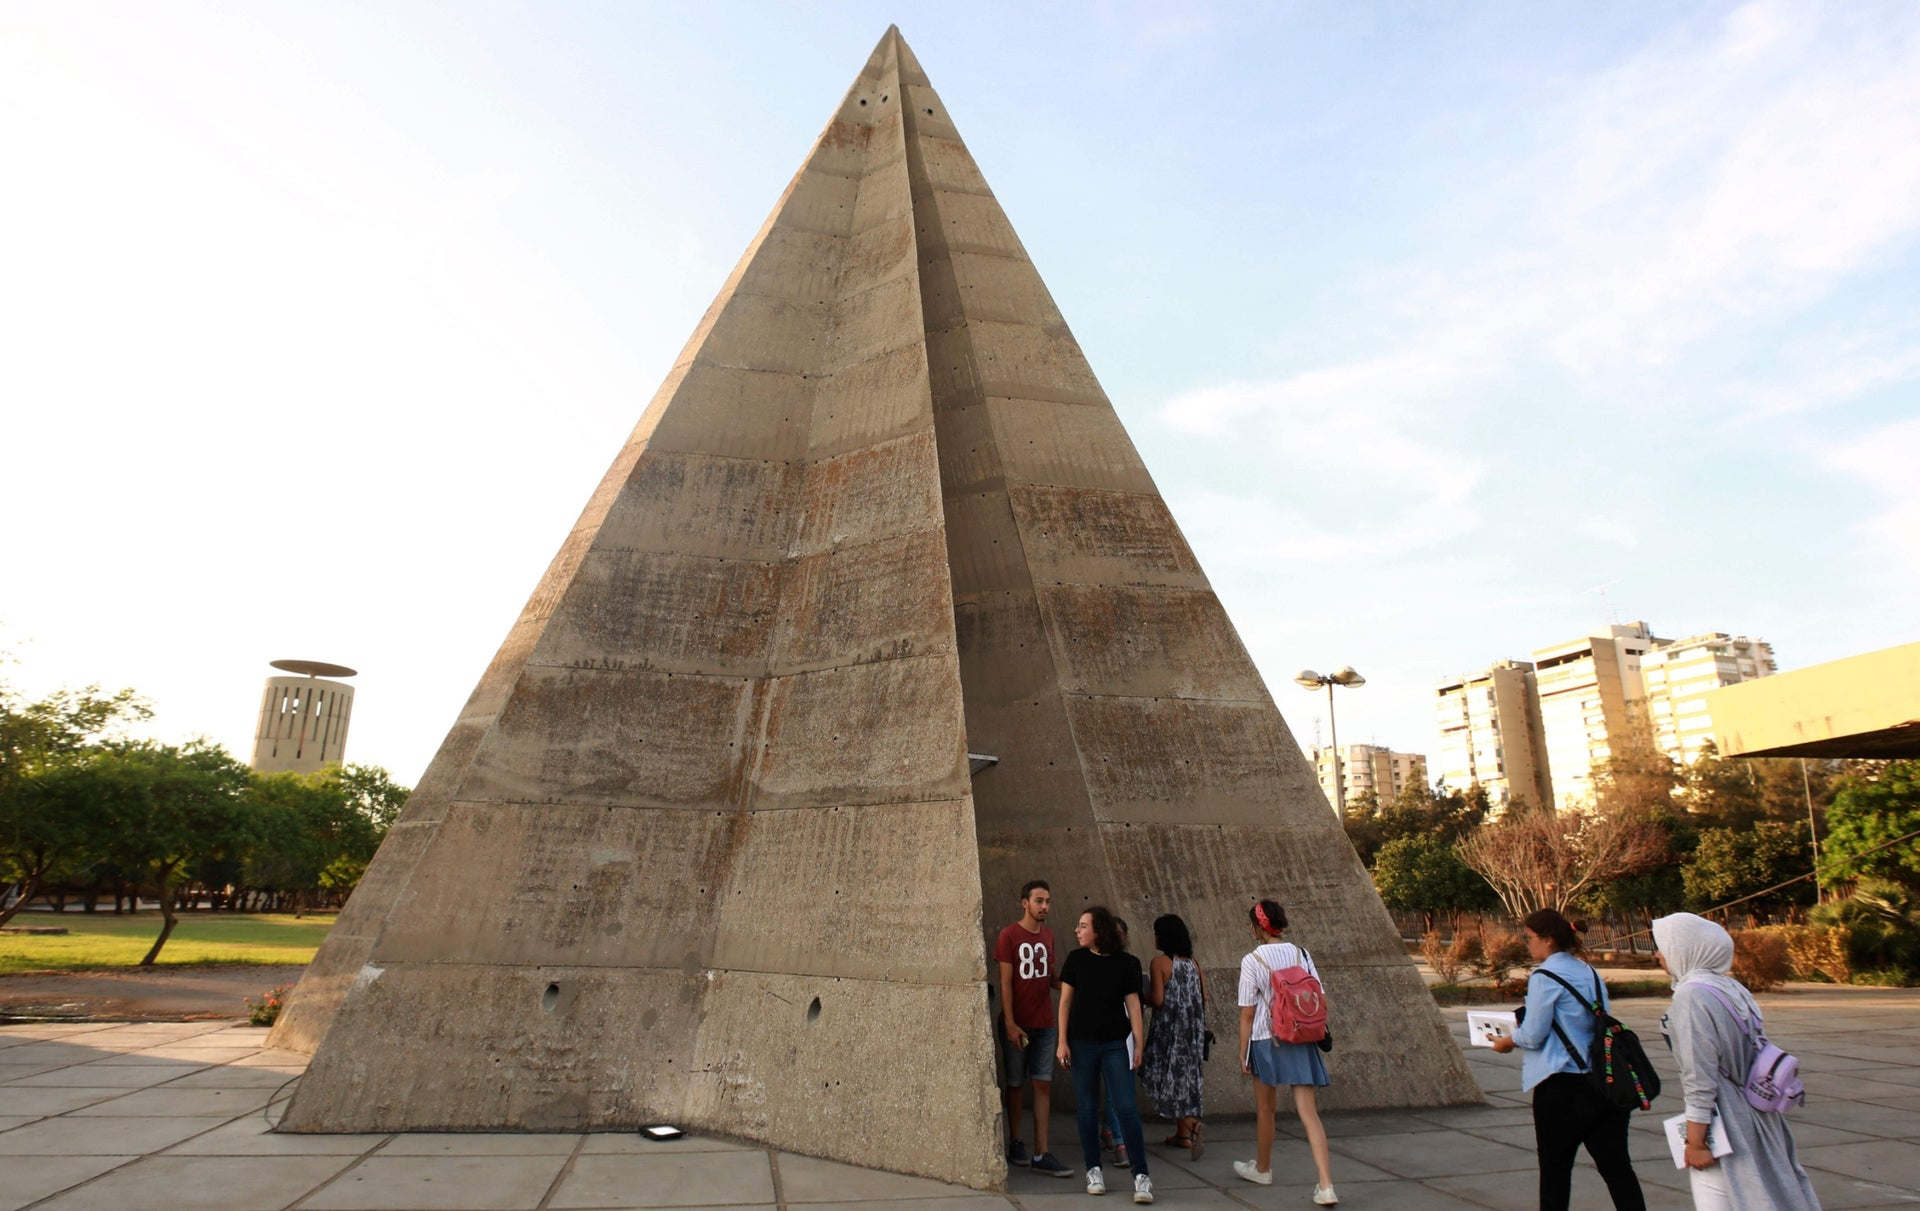 The stone pyramid during an exhibiton at the grounds of the Tripoli International Fair.